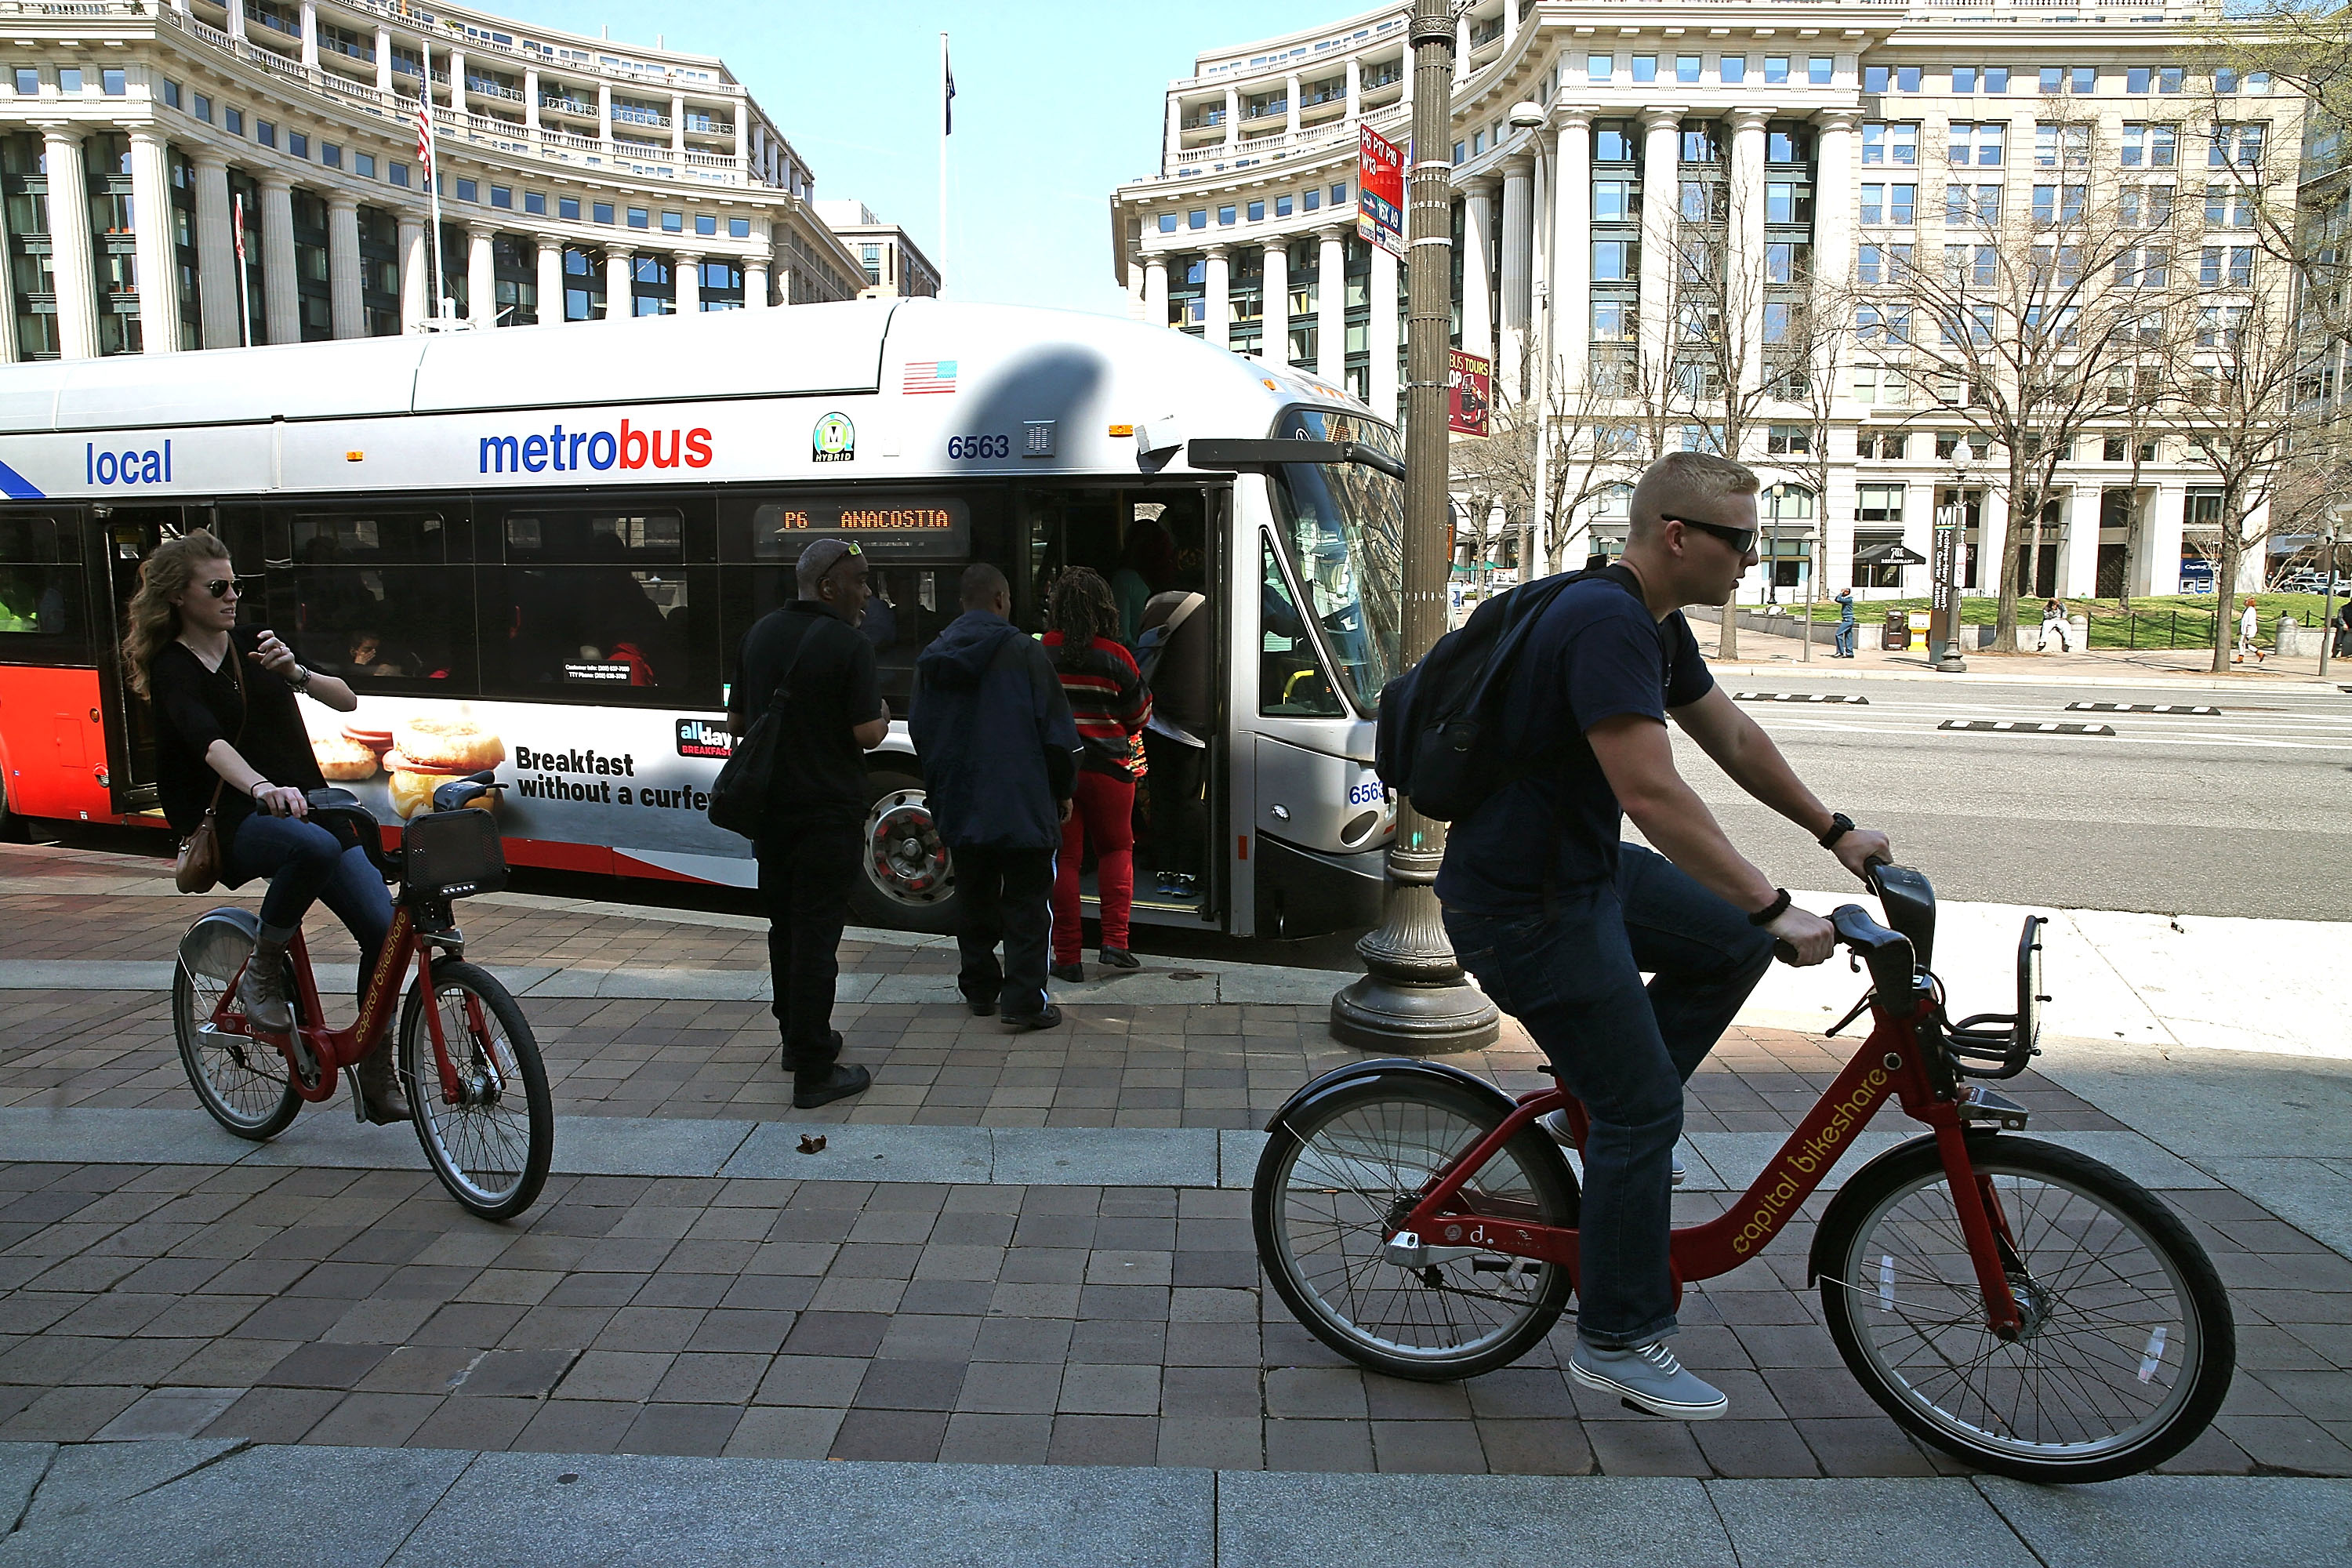 DC-area commuters can take part in Bike to Work Day on Friday